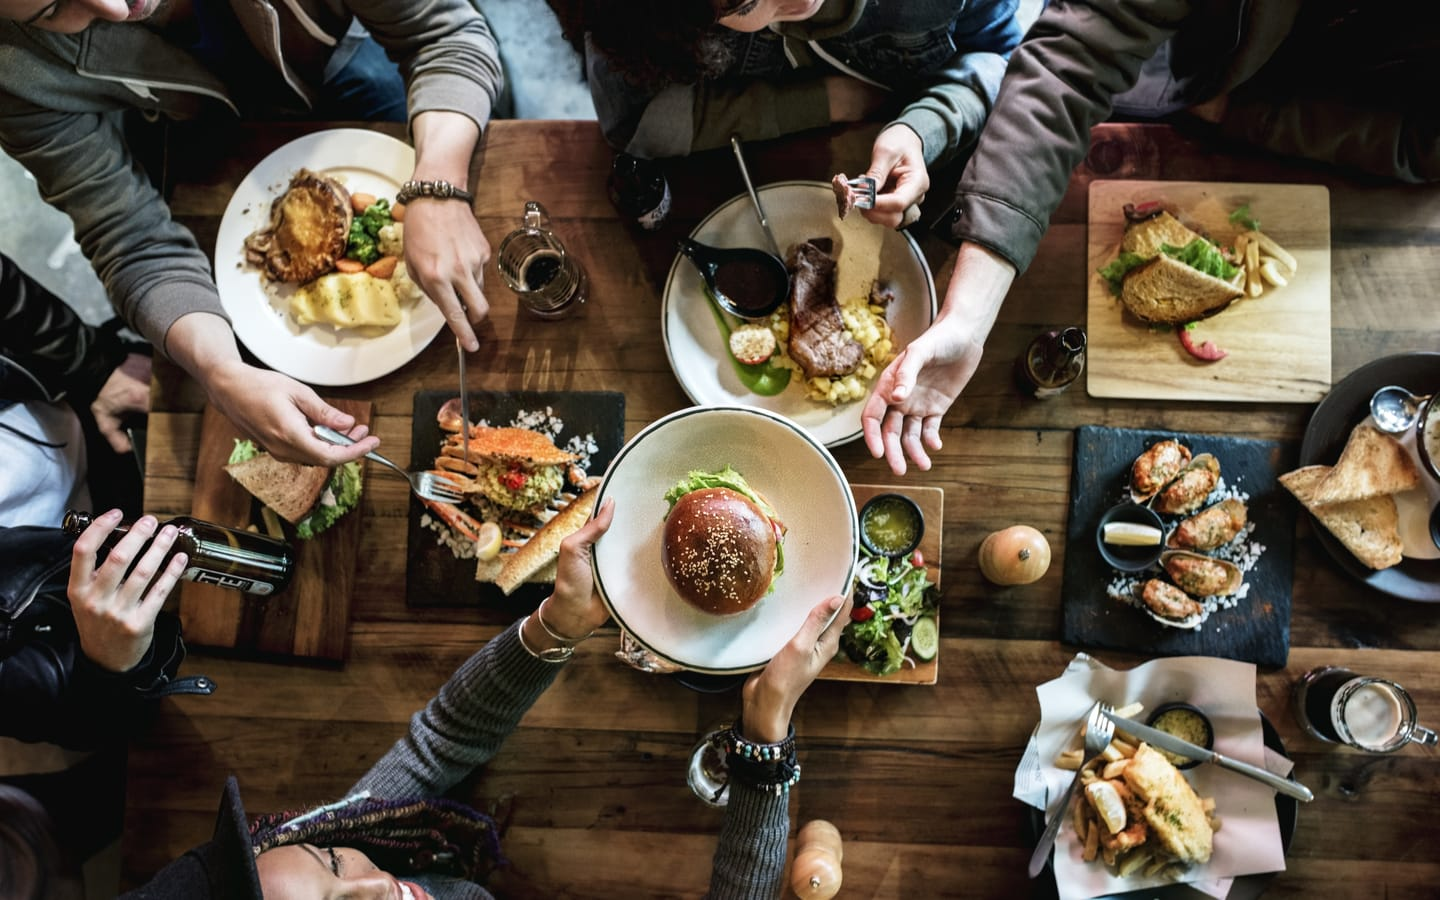 Food adventure on a budget is easy to pull off in Abu Dhabi